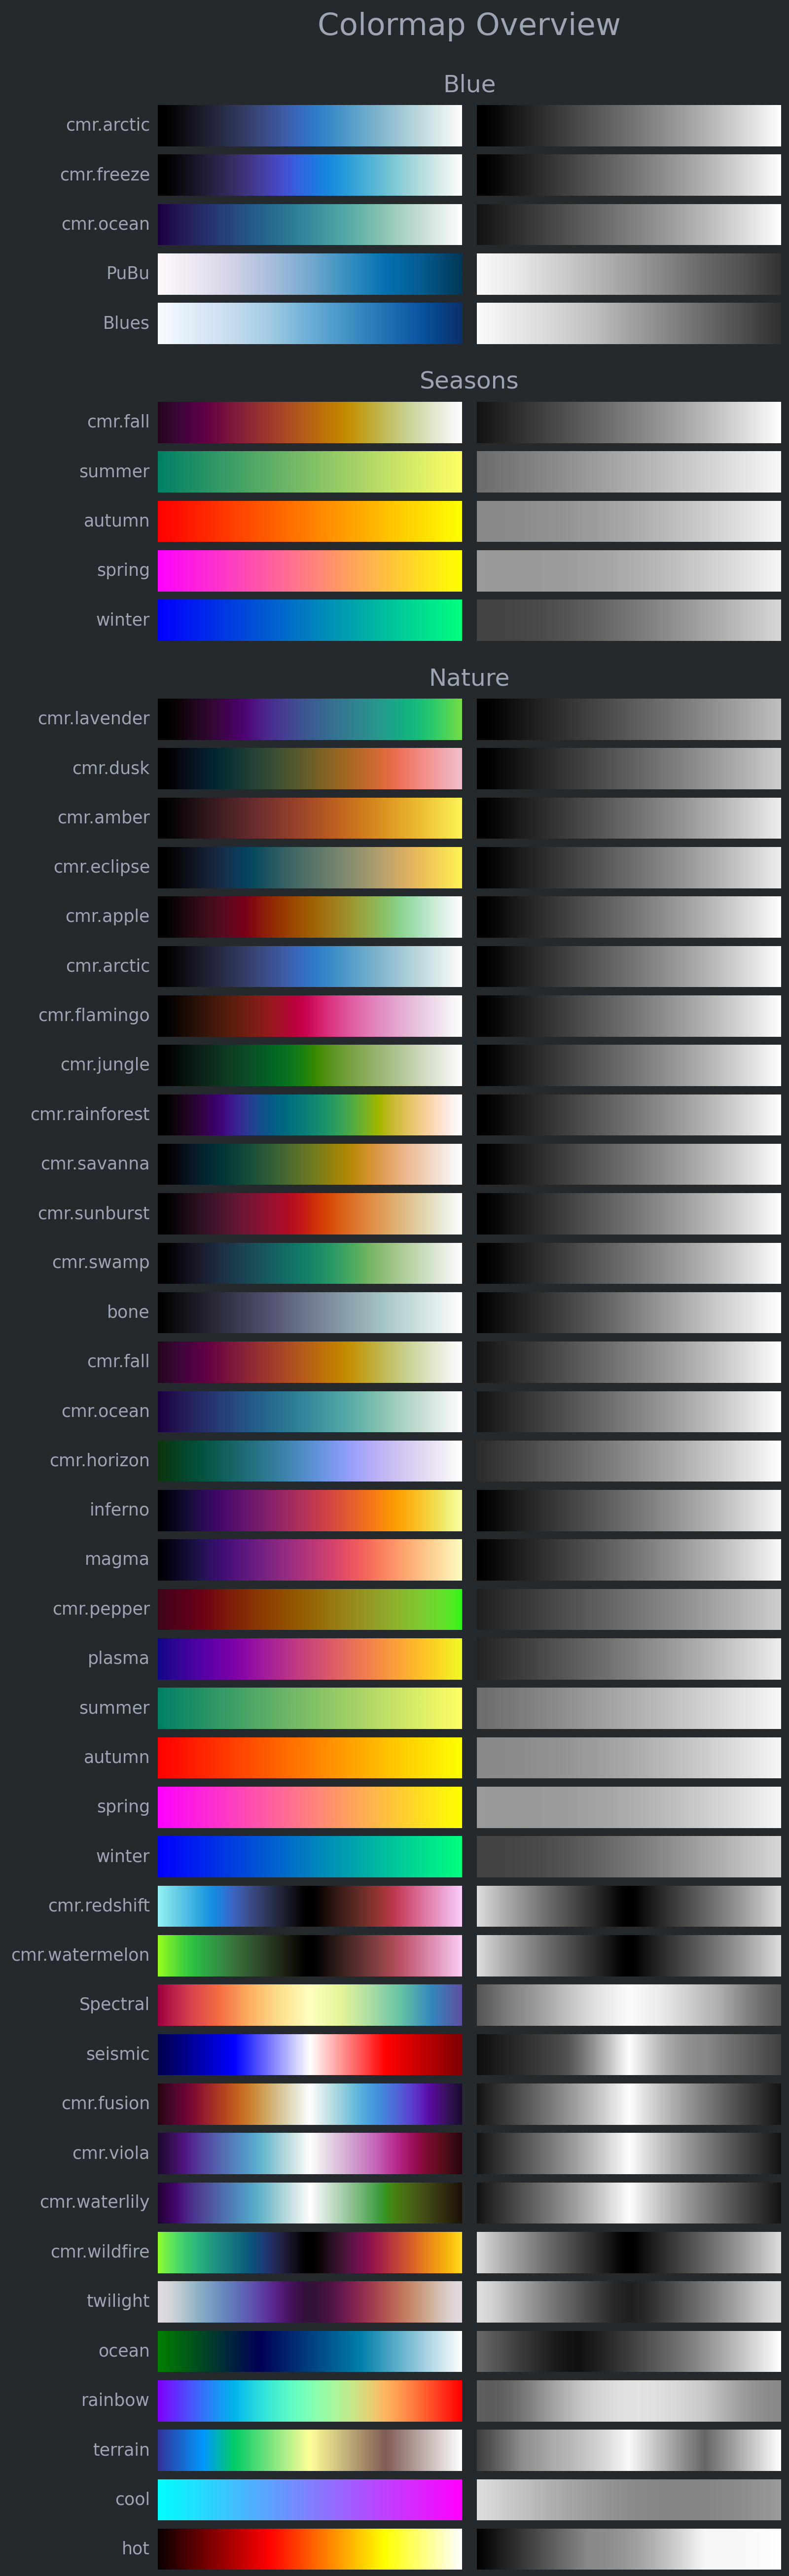 Colormap overview of selected colormaps, divided into categories.